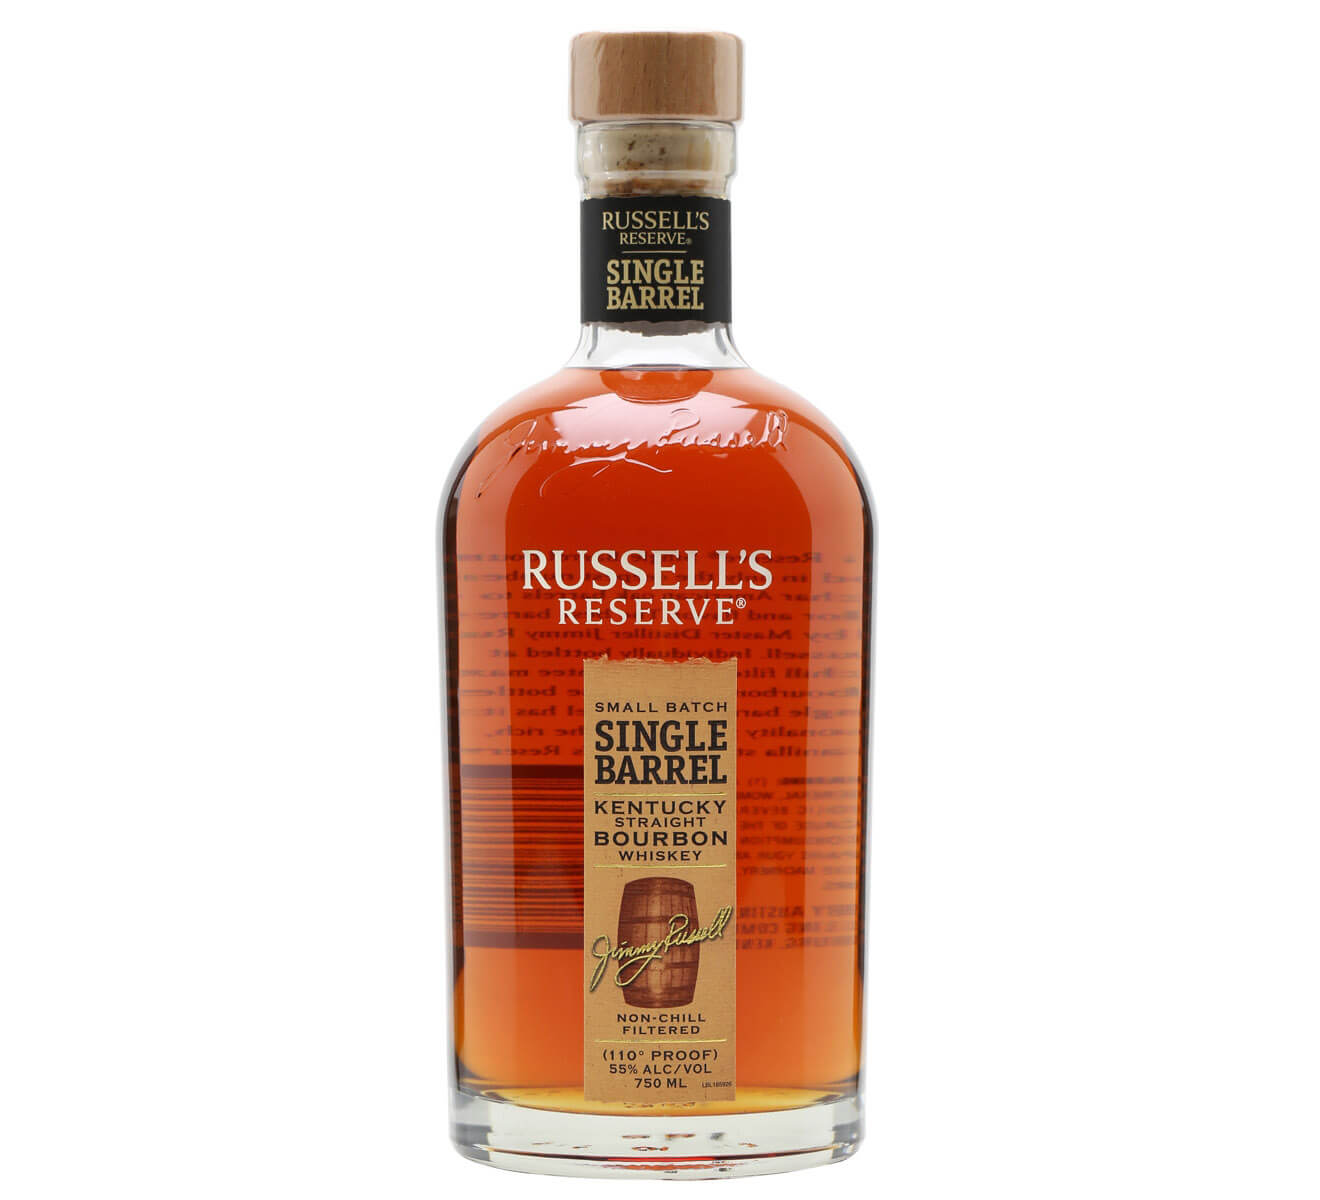 Russell's Reserve Single Barrell Bourbon